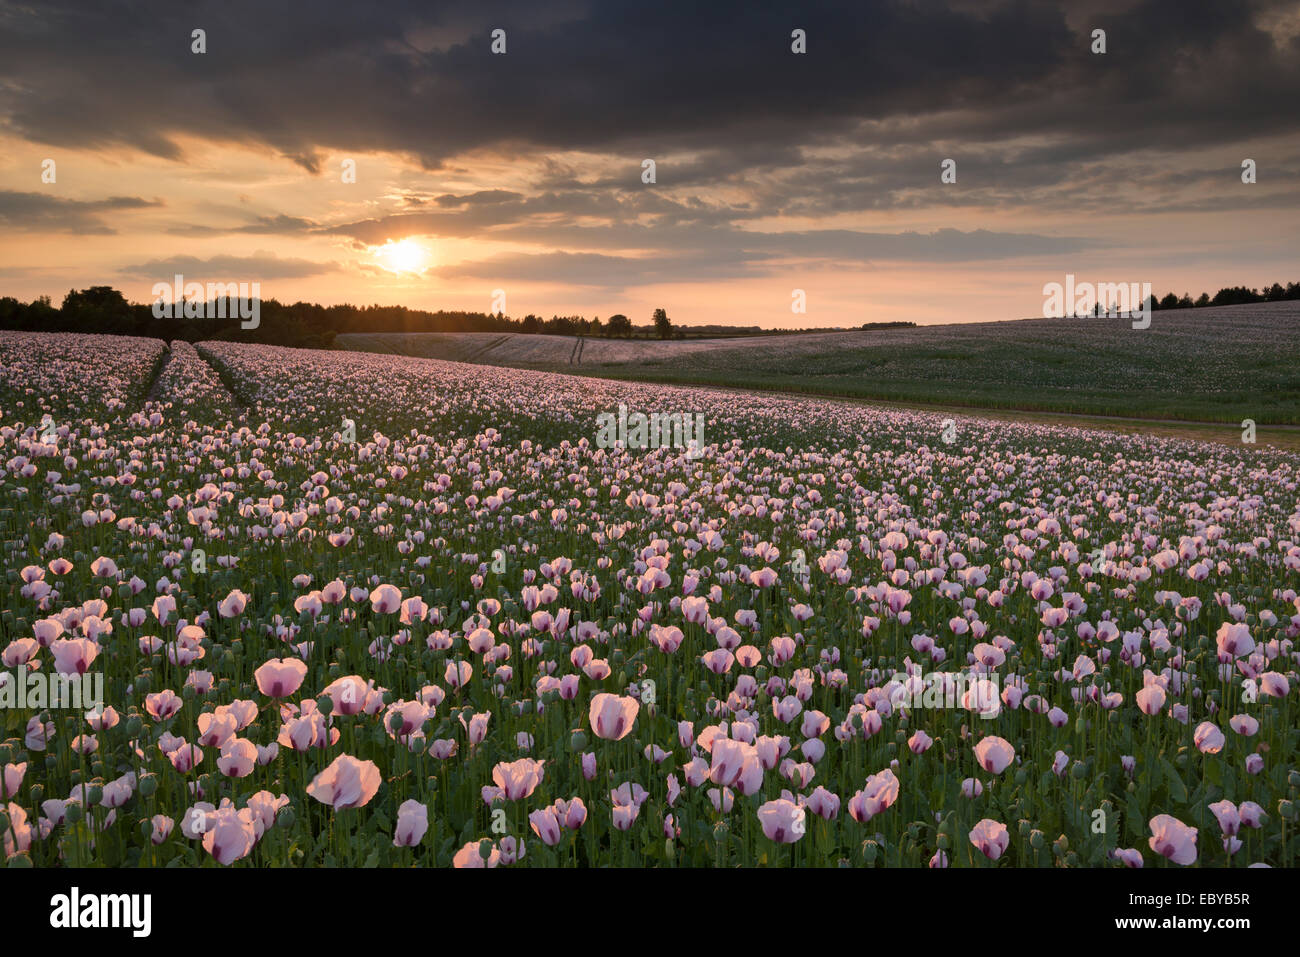 Opium Poppies at sunset, Oxfordshire, England. Summer (June) 2014. - Stock Image